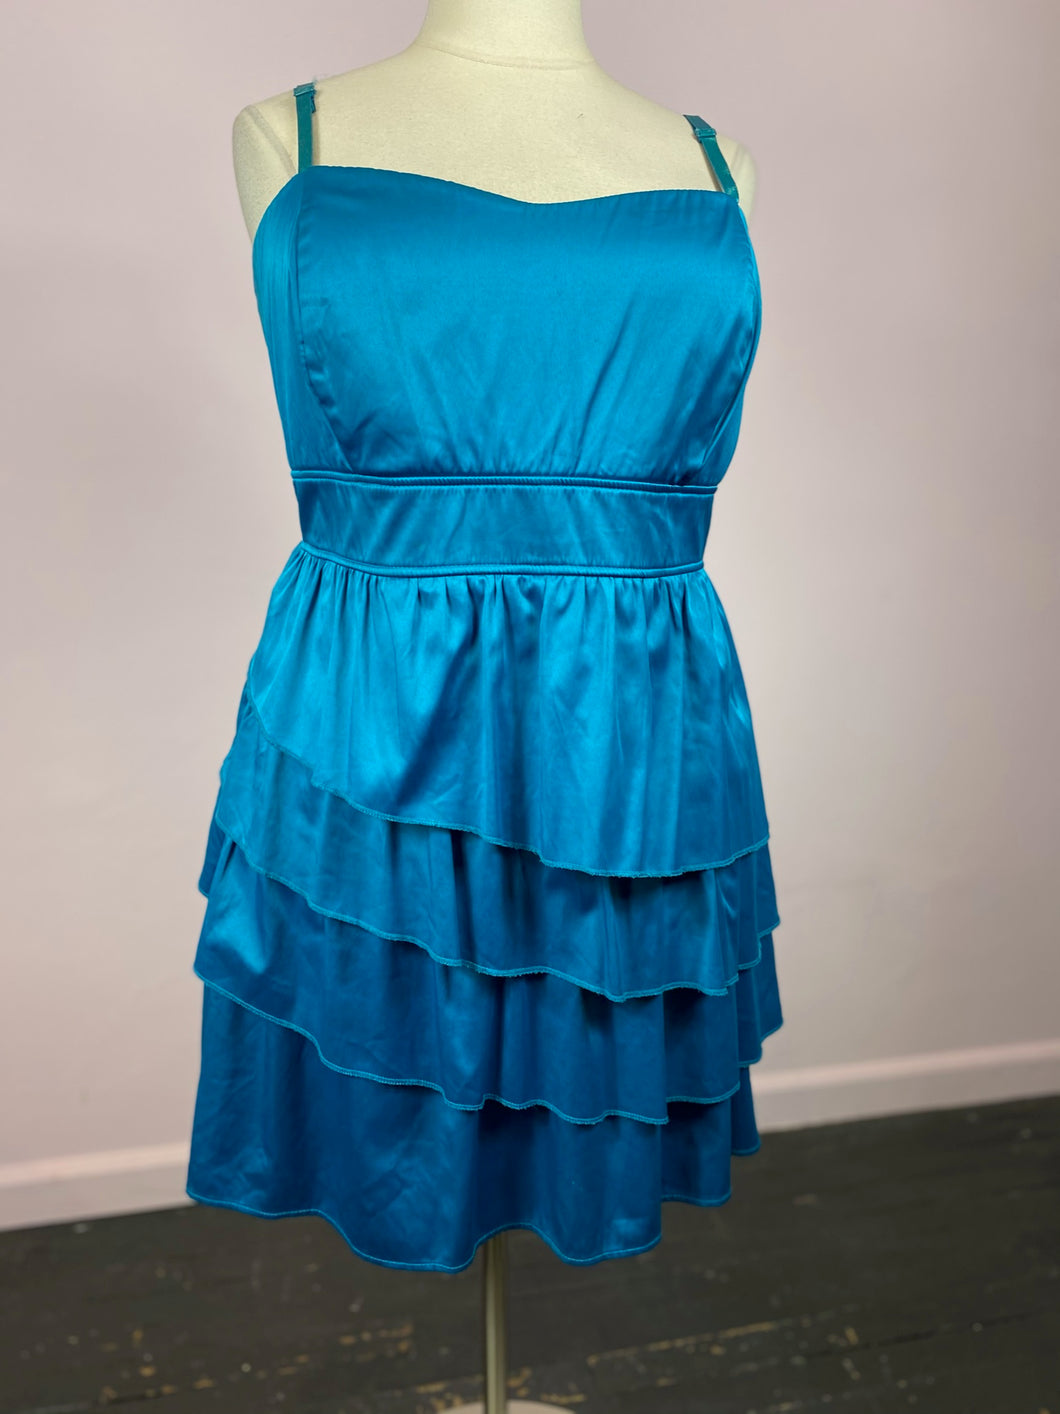 Electric Blue Layered Torrid Dress, Size 22